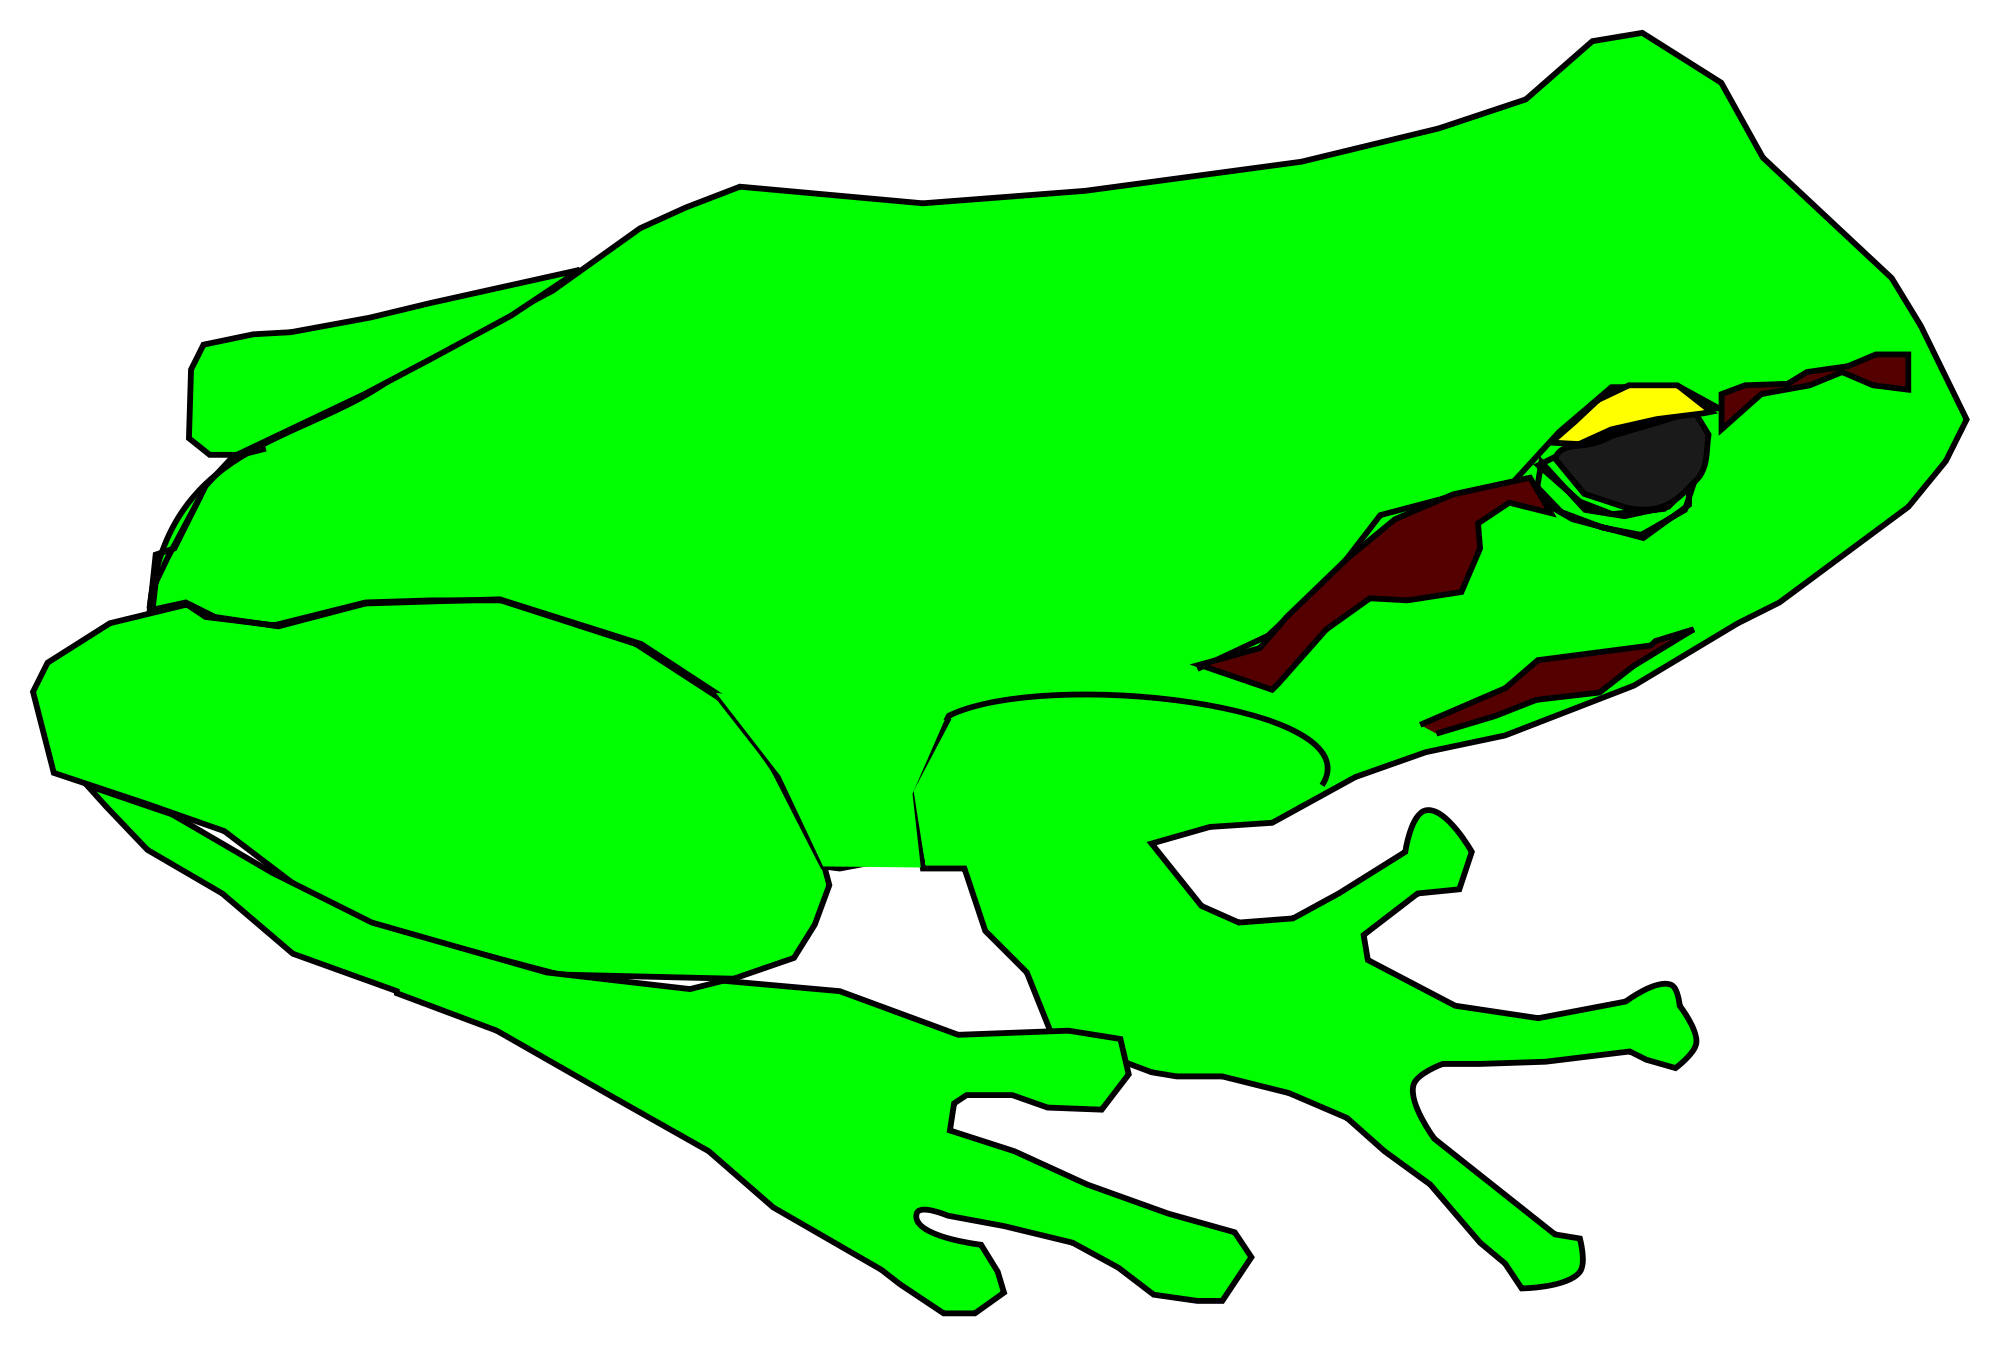 Green Frog svg #11, Download drawings